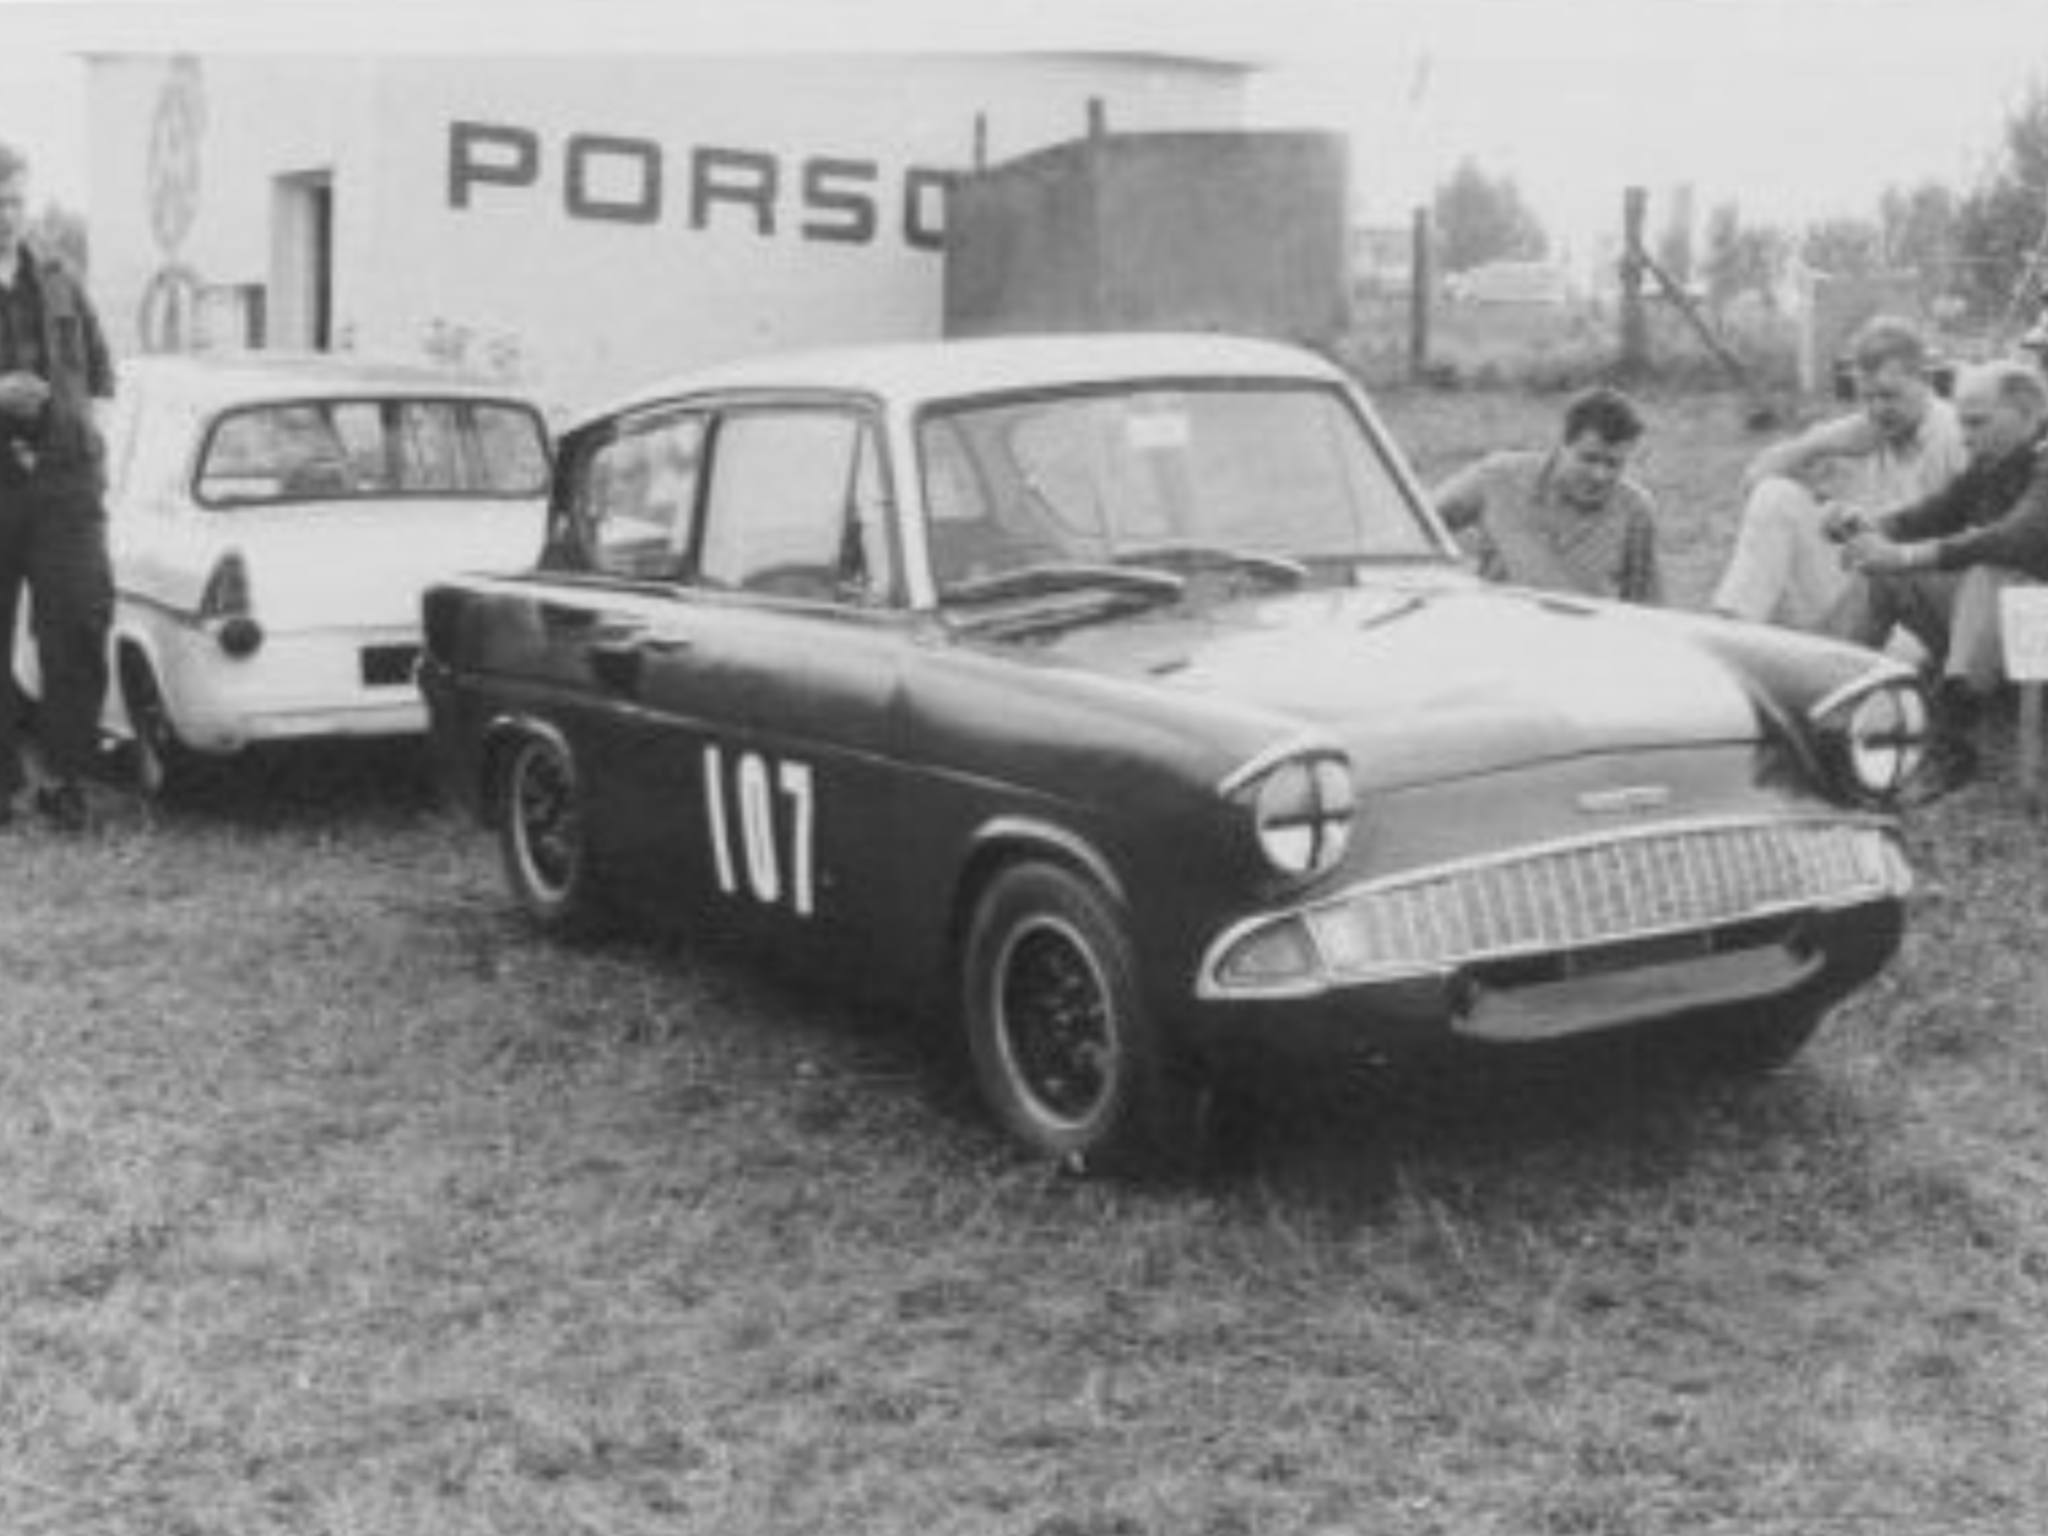 Pin By Dave Rupert On Ford Ford Anglia Touring Car Racing